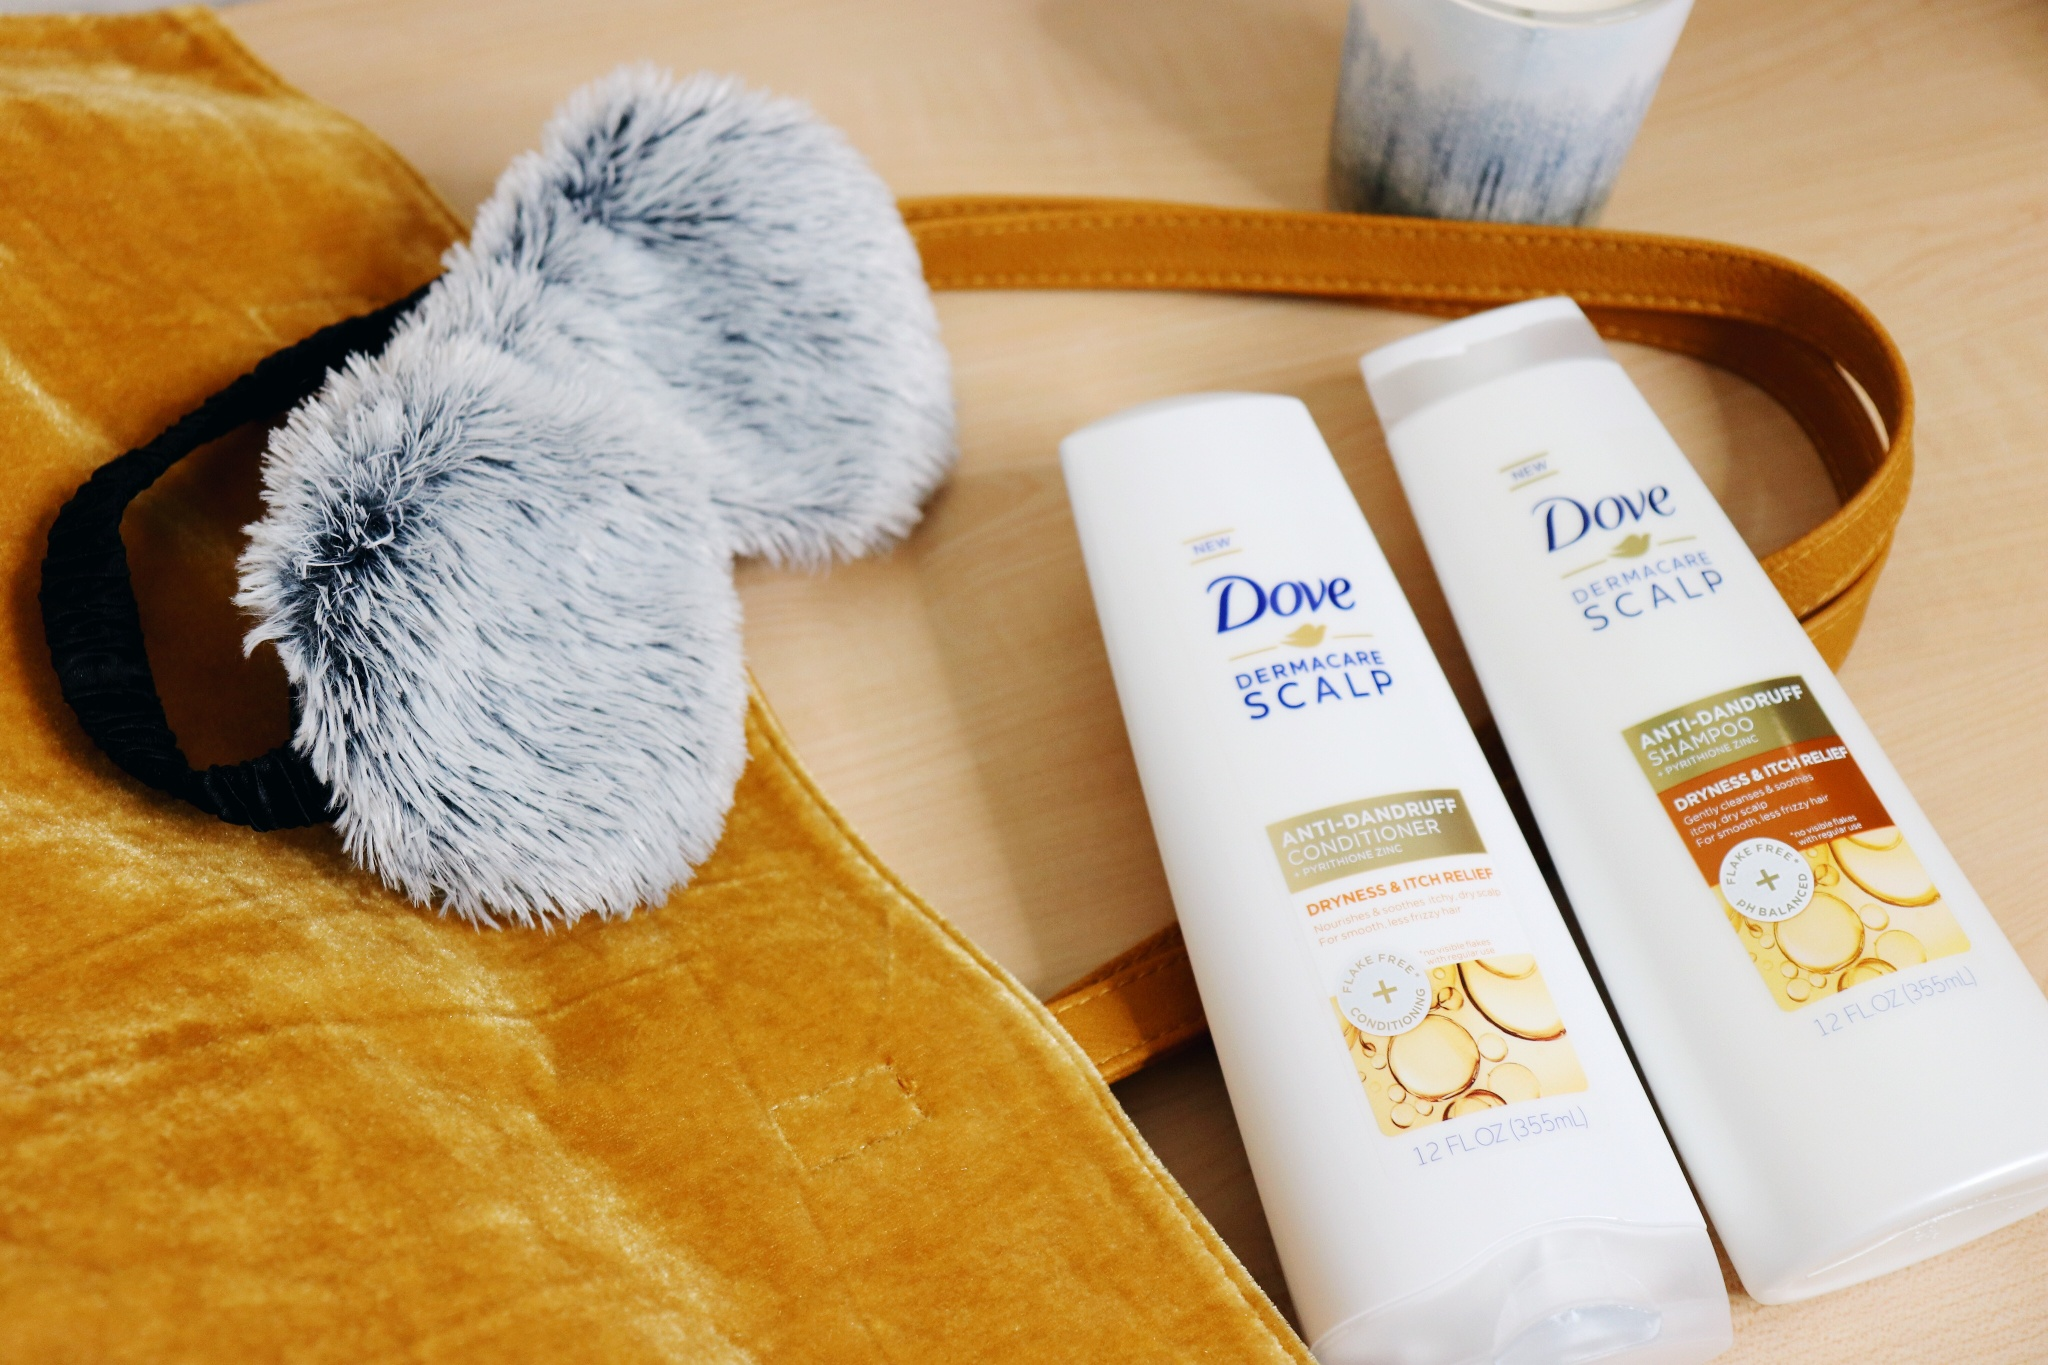 Keeping My Scalp Nourished with Dove Dermacare